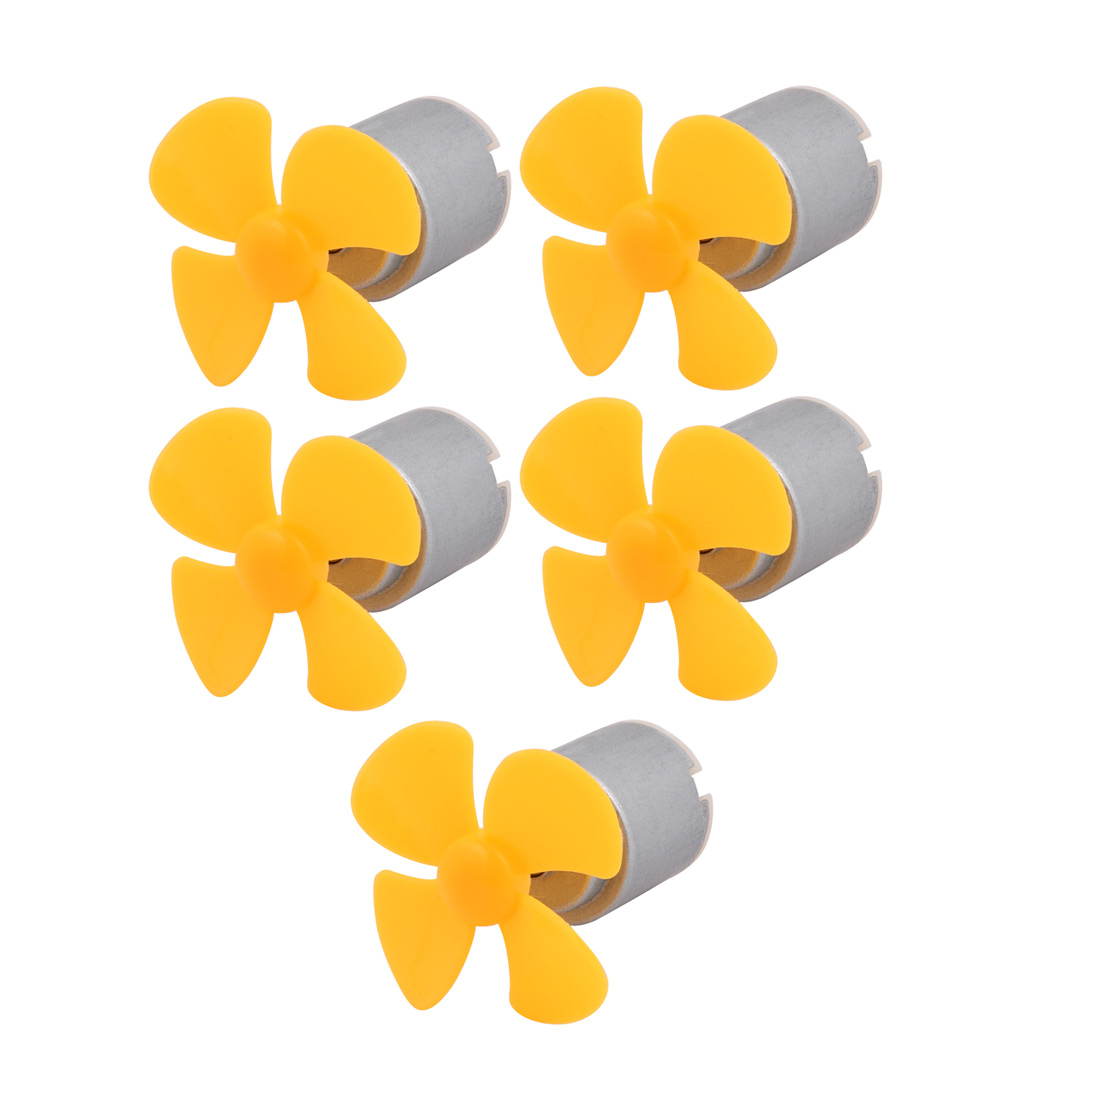 5pcs DC 3V 0.05A 12500RPM Strong Force Motor 4 Vanes 40mm Yellow Propeller for RC Aircraft